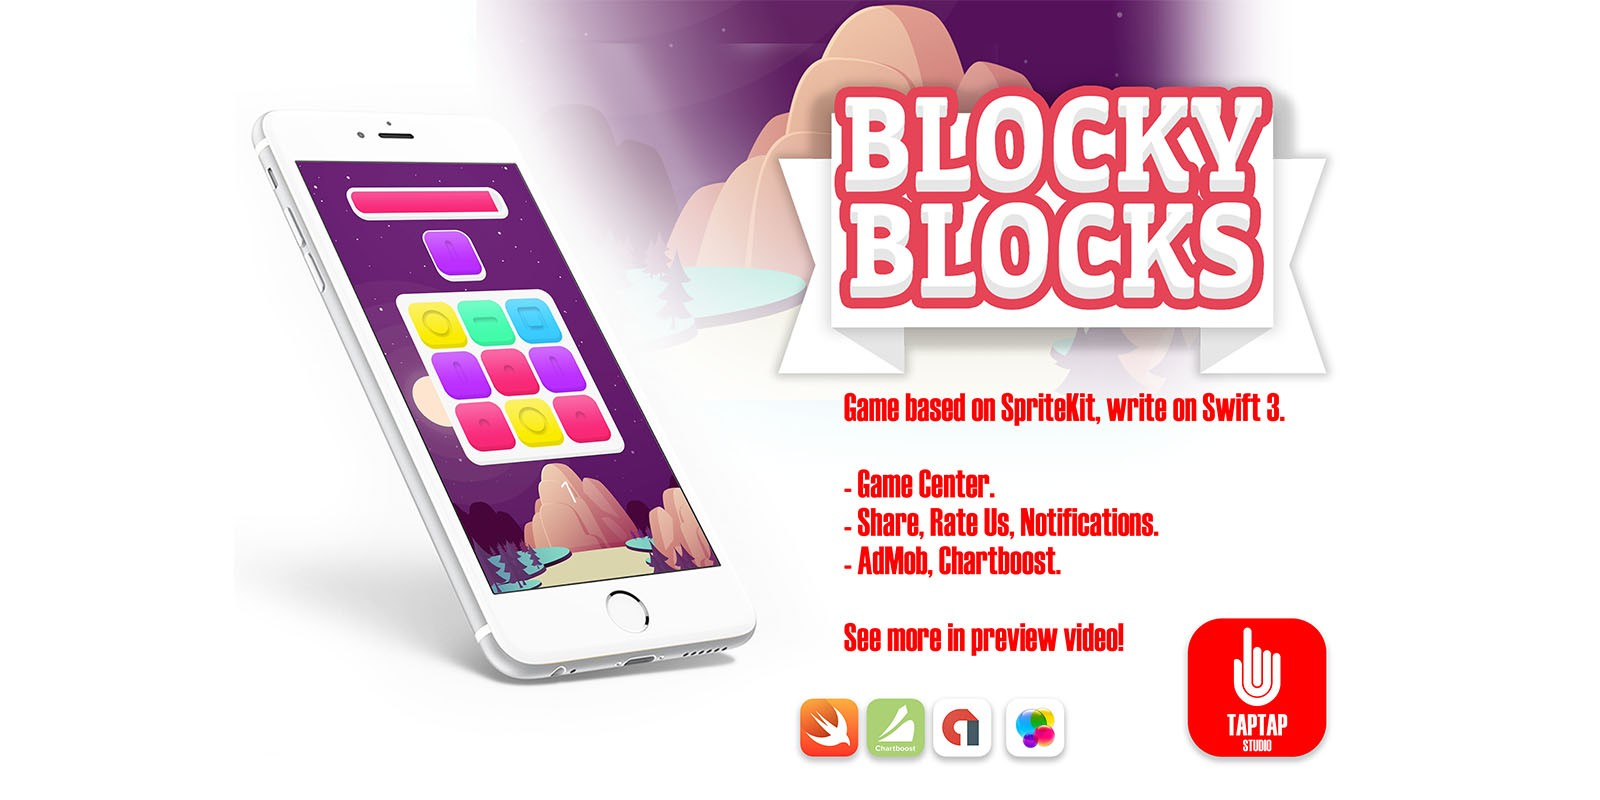 Blocky Blocks - iOS Xcode Source Code